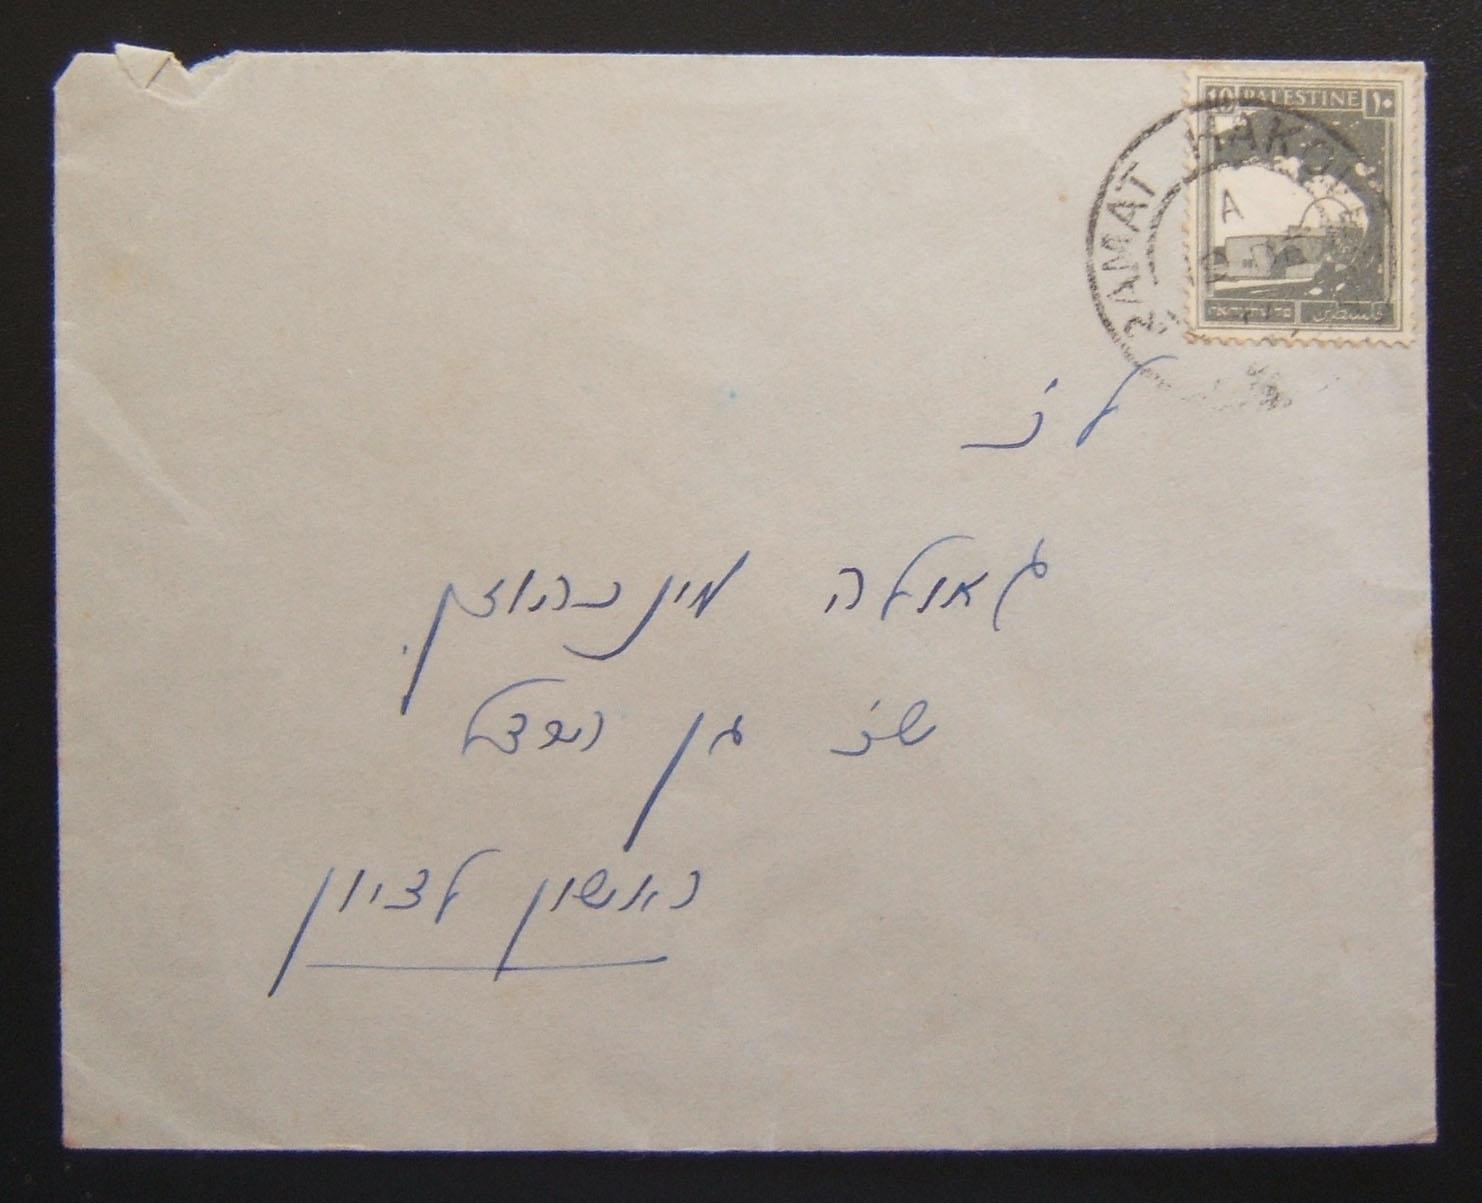 1947 Mandatory small towns mail: 19 DE 47 comm cv ex RAMAT HAKOVESH to RLZ franked 10m per letter rate using Pictorals Ba97, tied by scarce local pmk D2; torn open at back but cv c